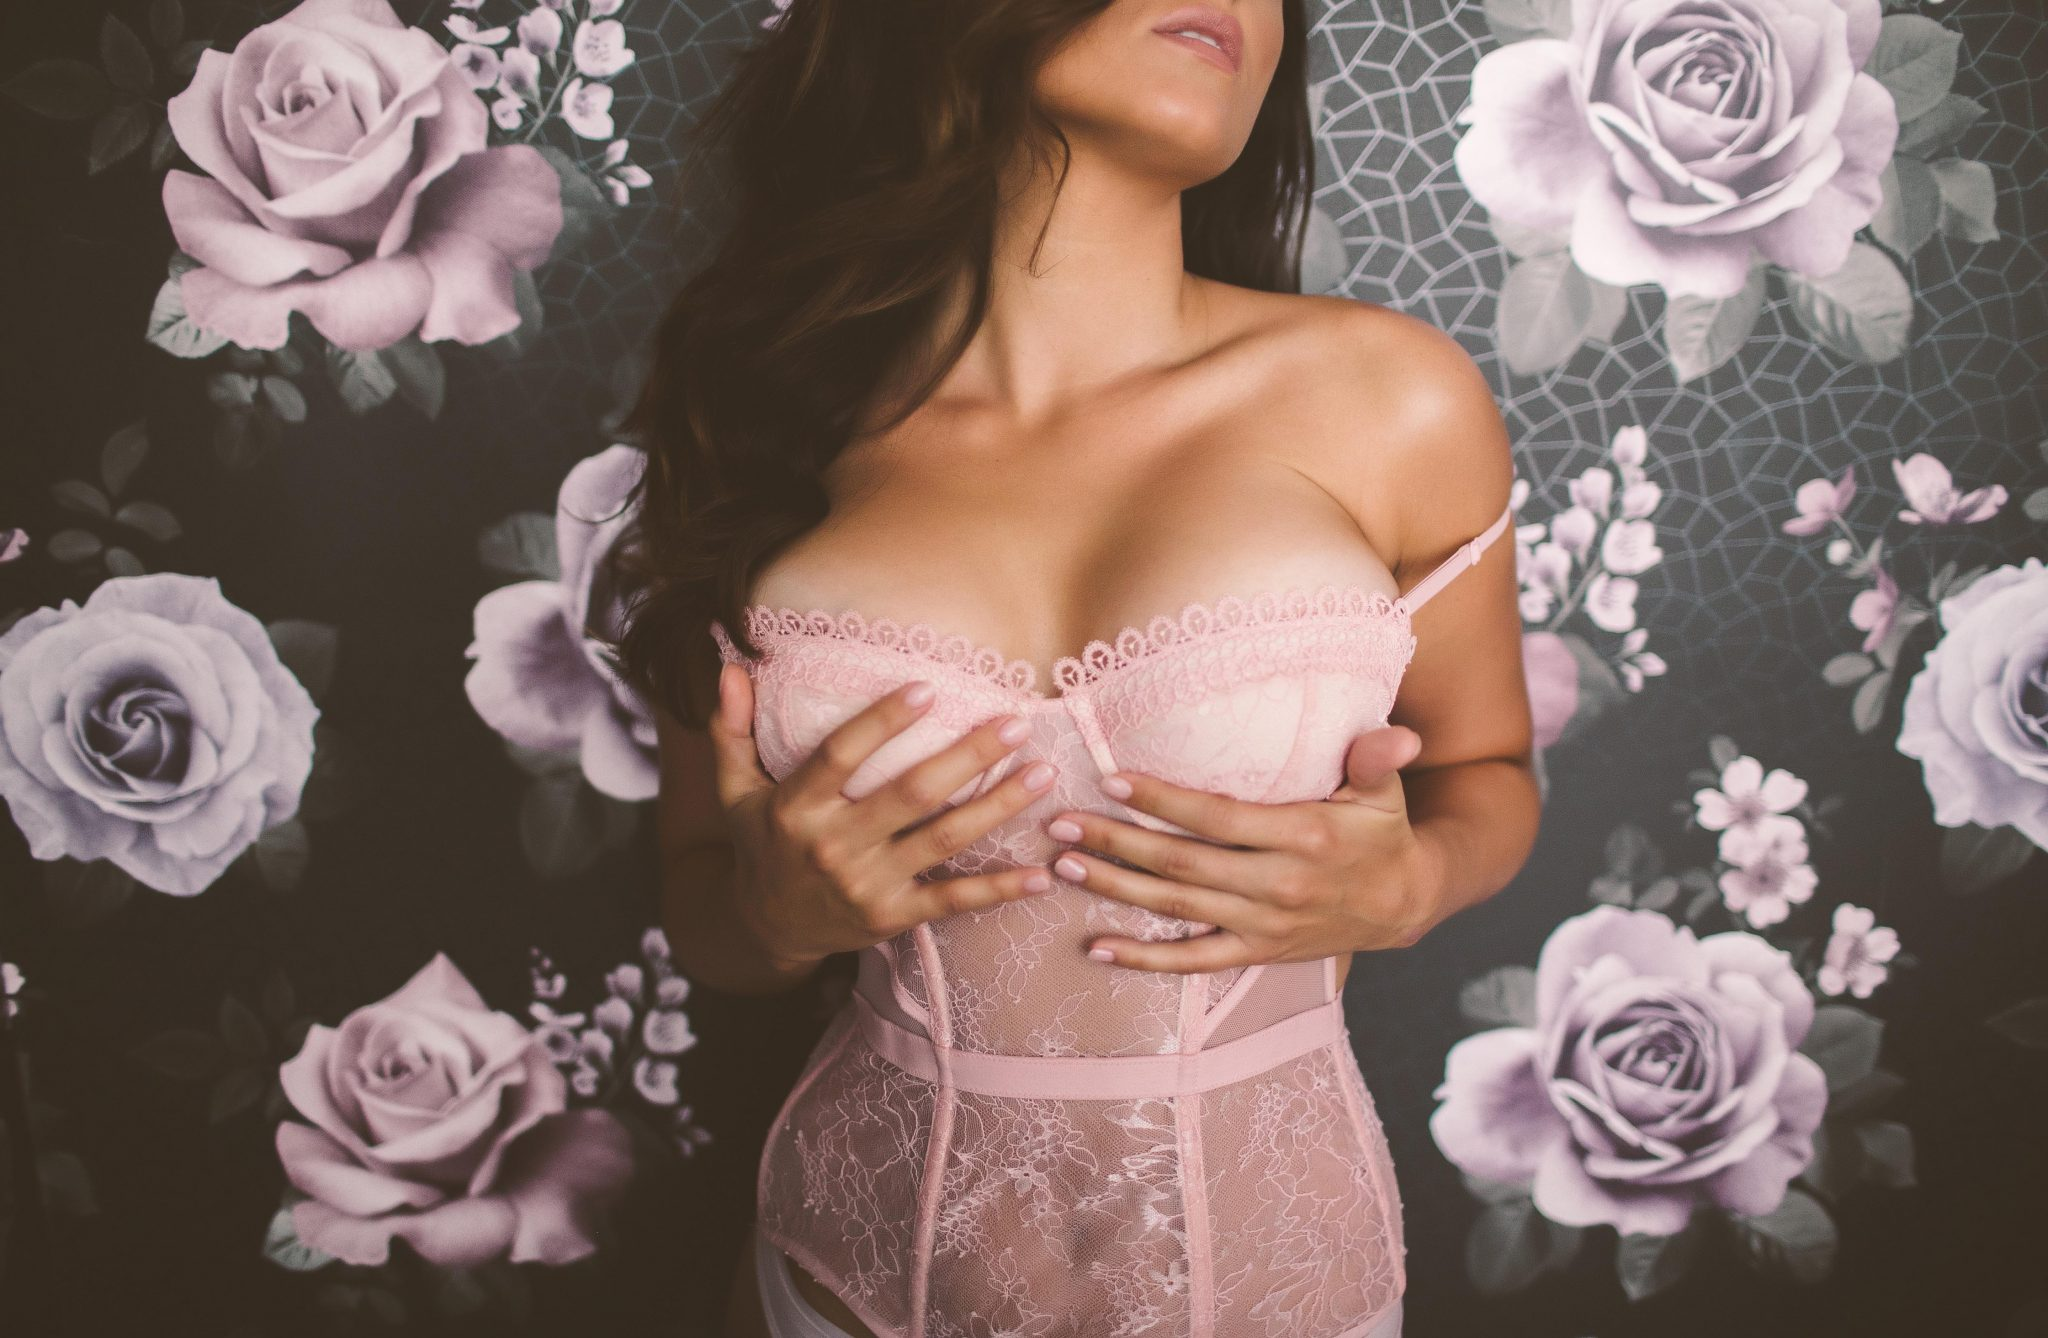 A NYC boudoir model wearing pink lingerie